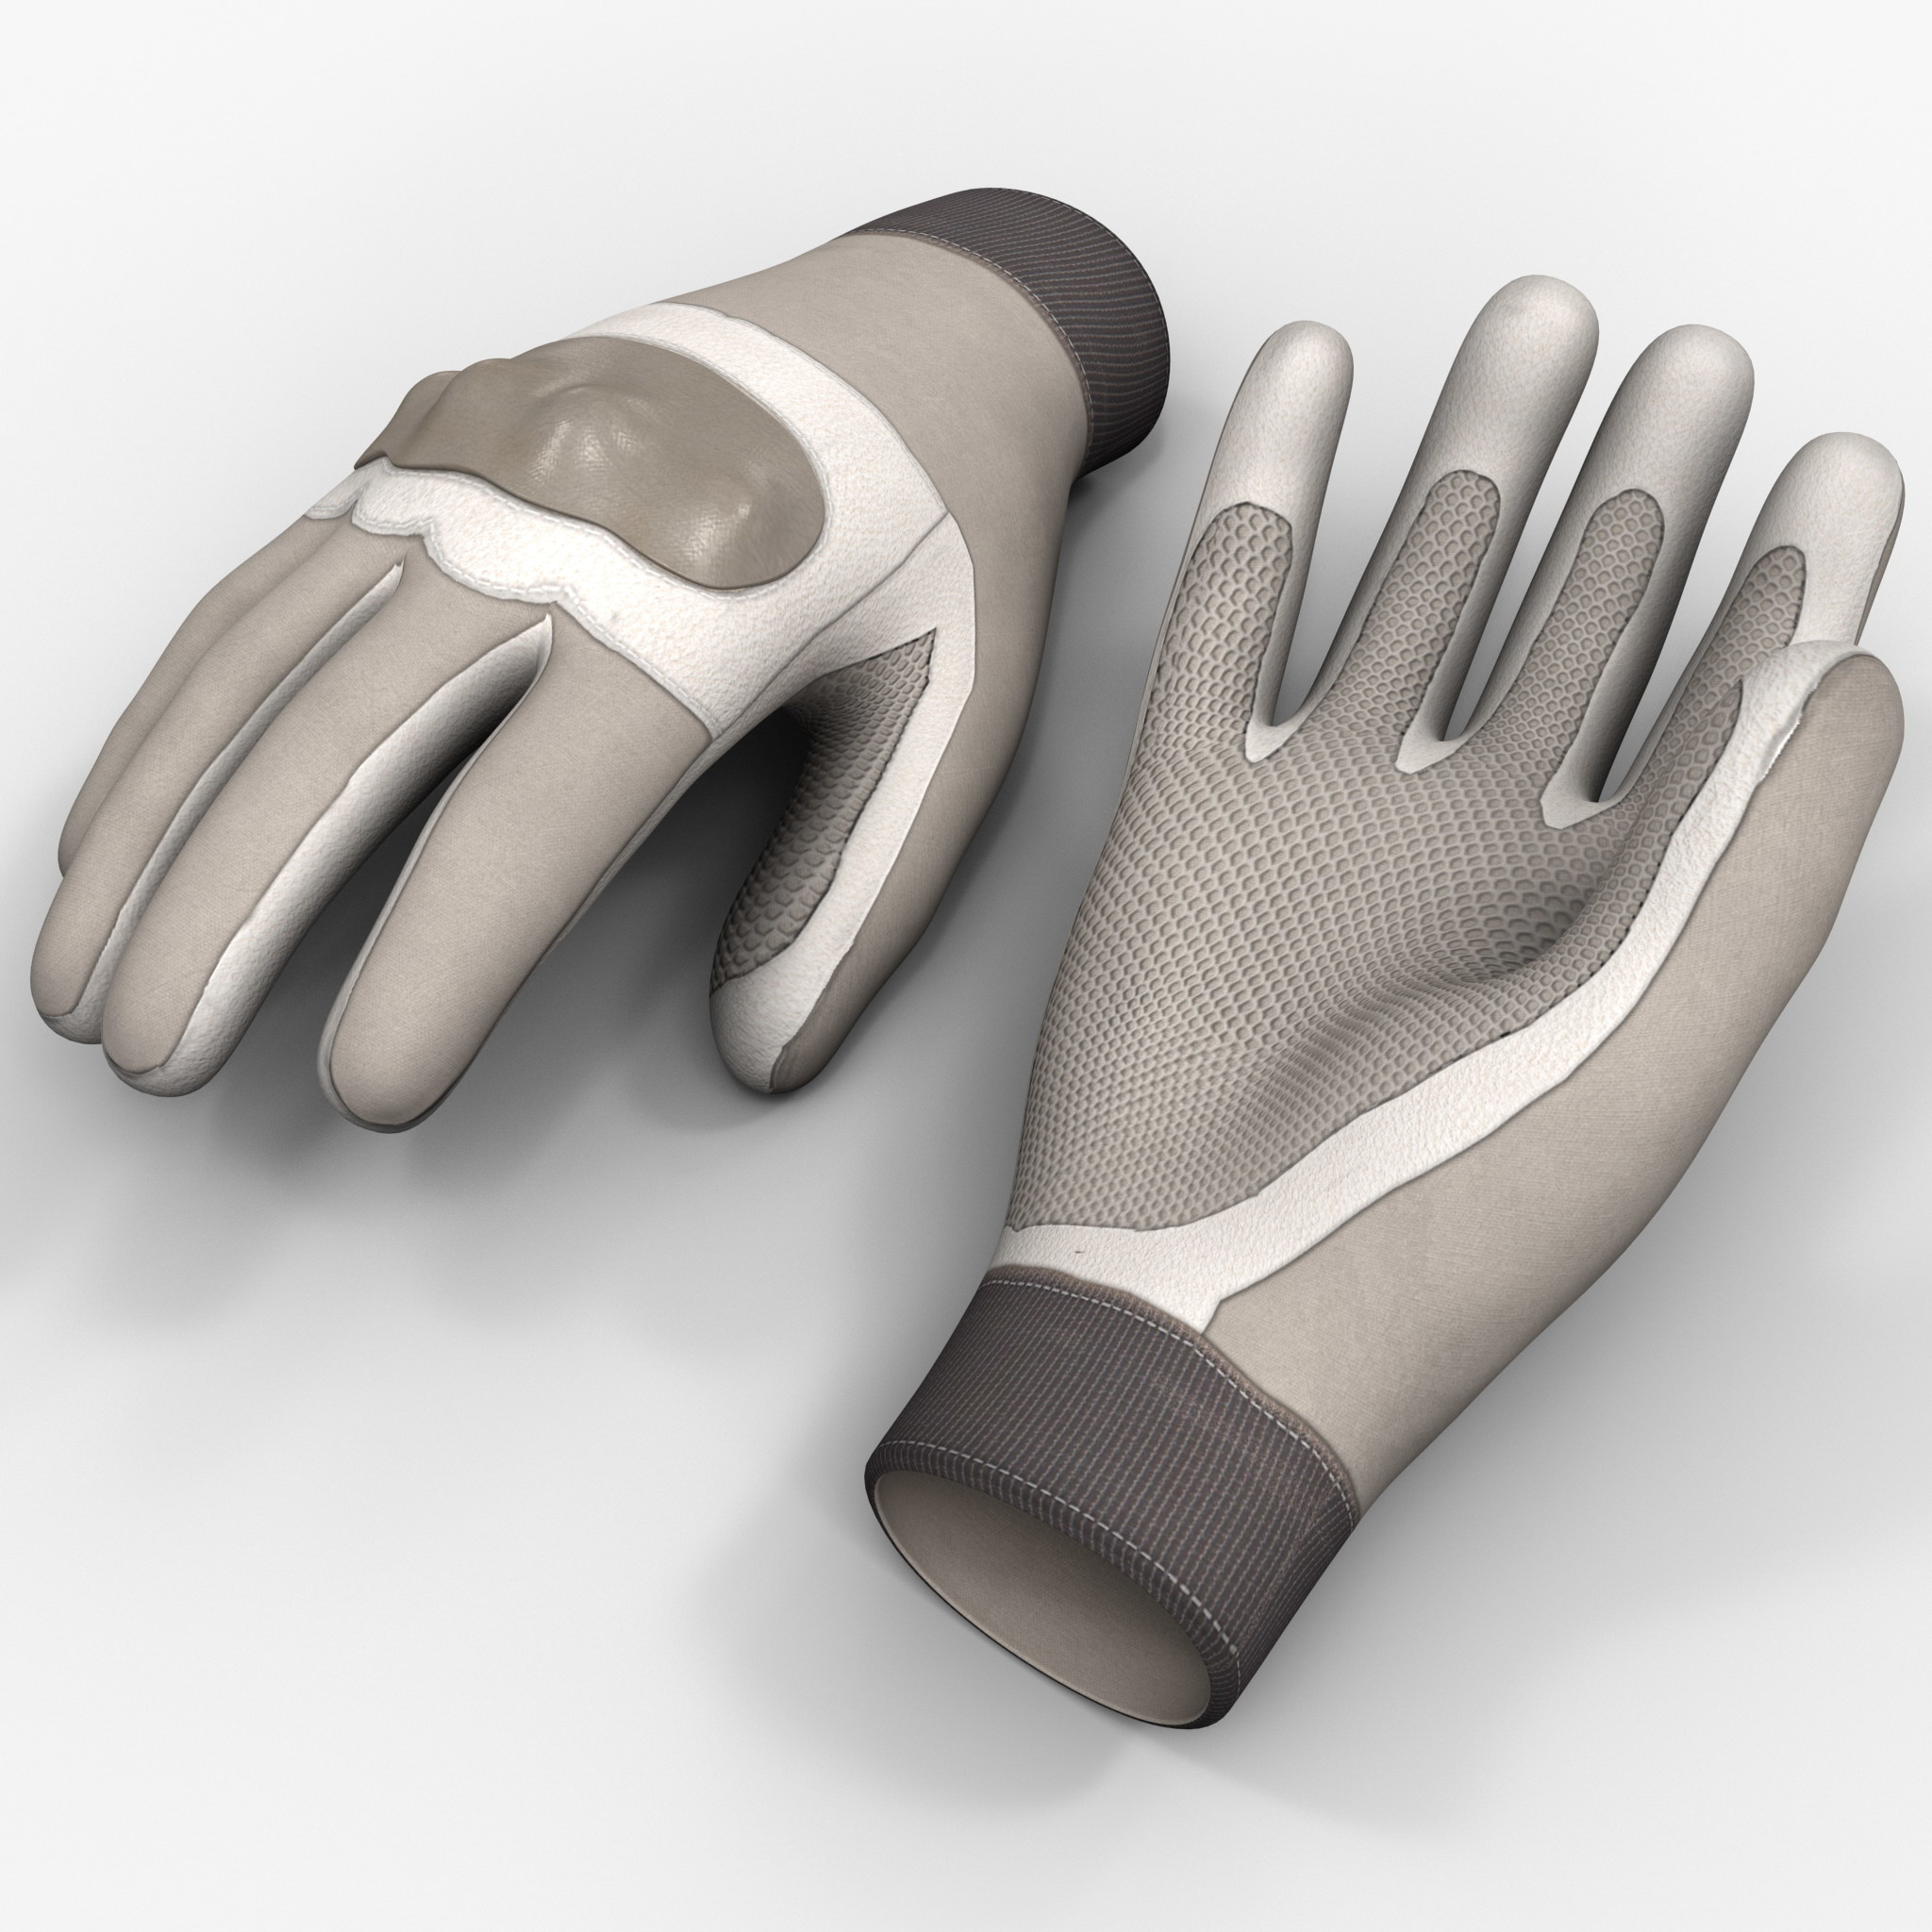 Futuristic Soldier Gloves_2.jpg